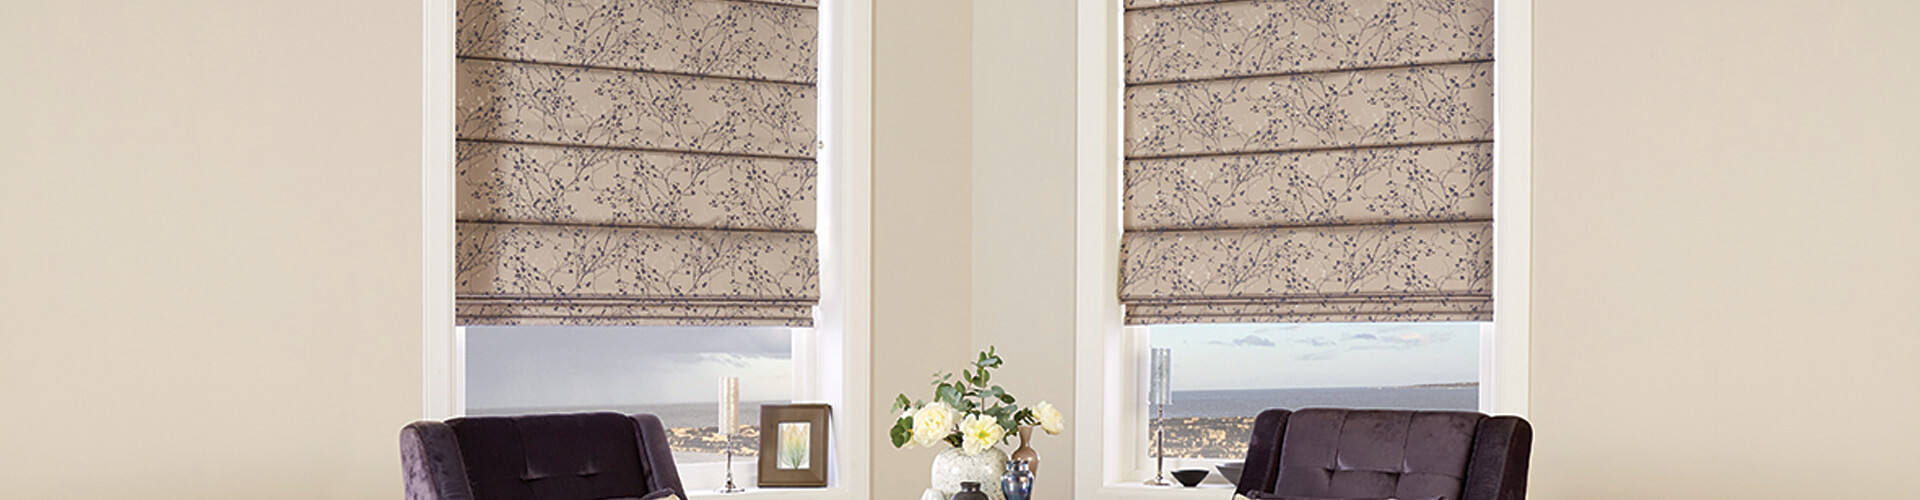 Domestic Roman Blinds - Hero Image